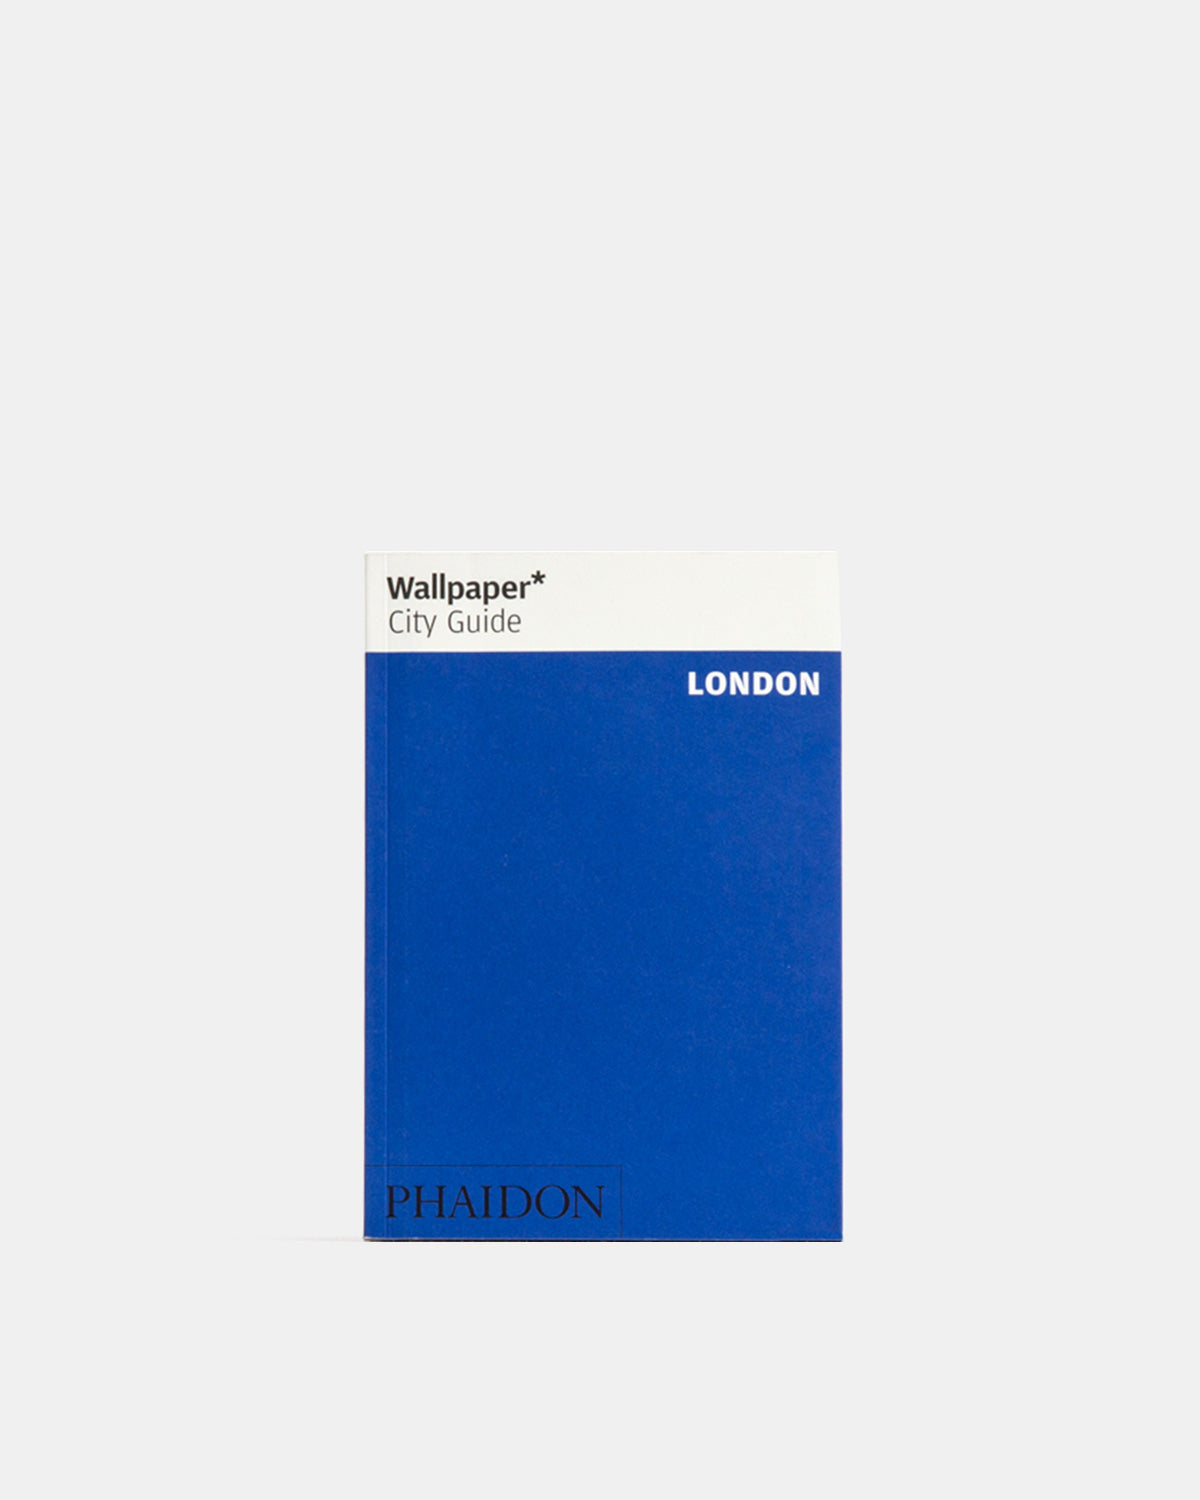 Wallpaper* - City Guide London